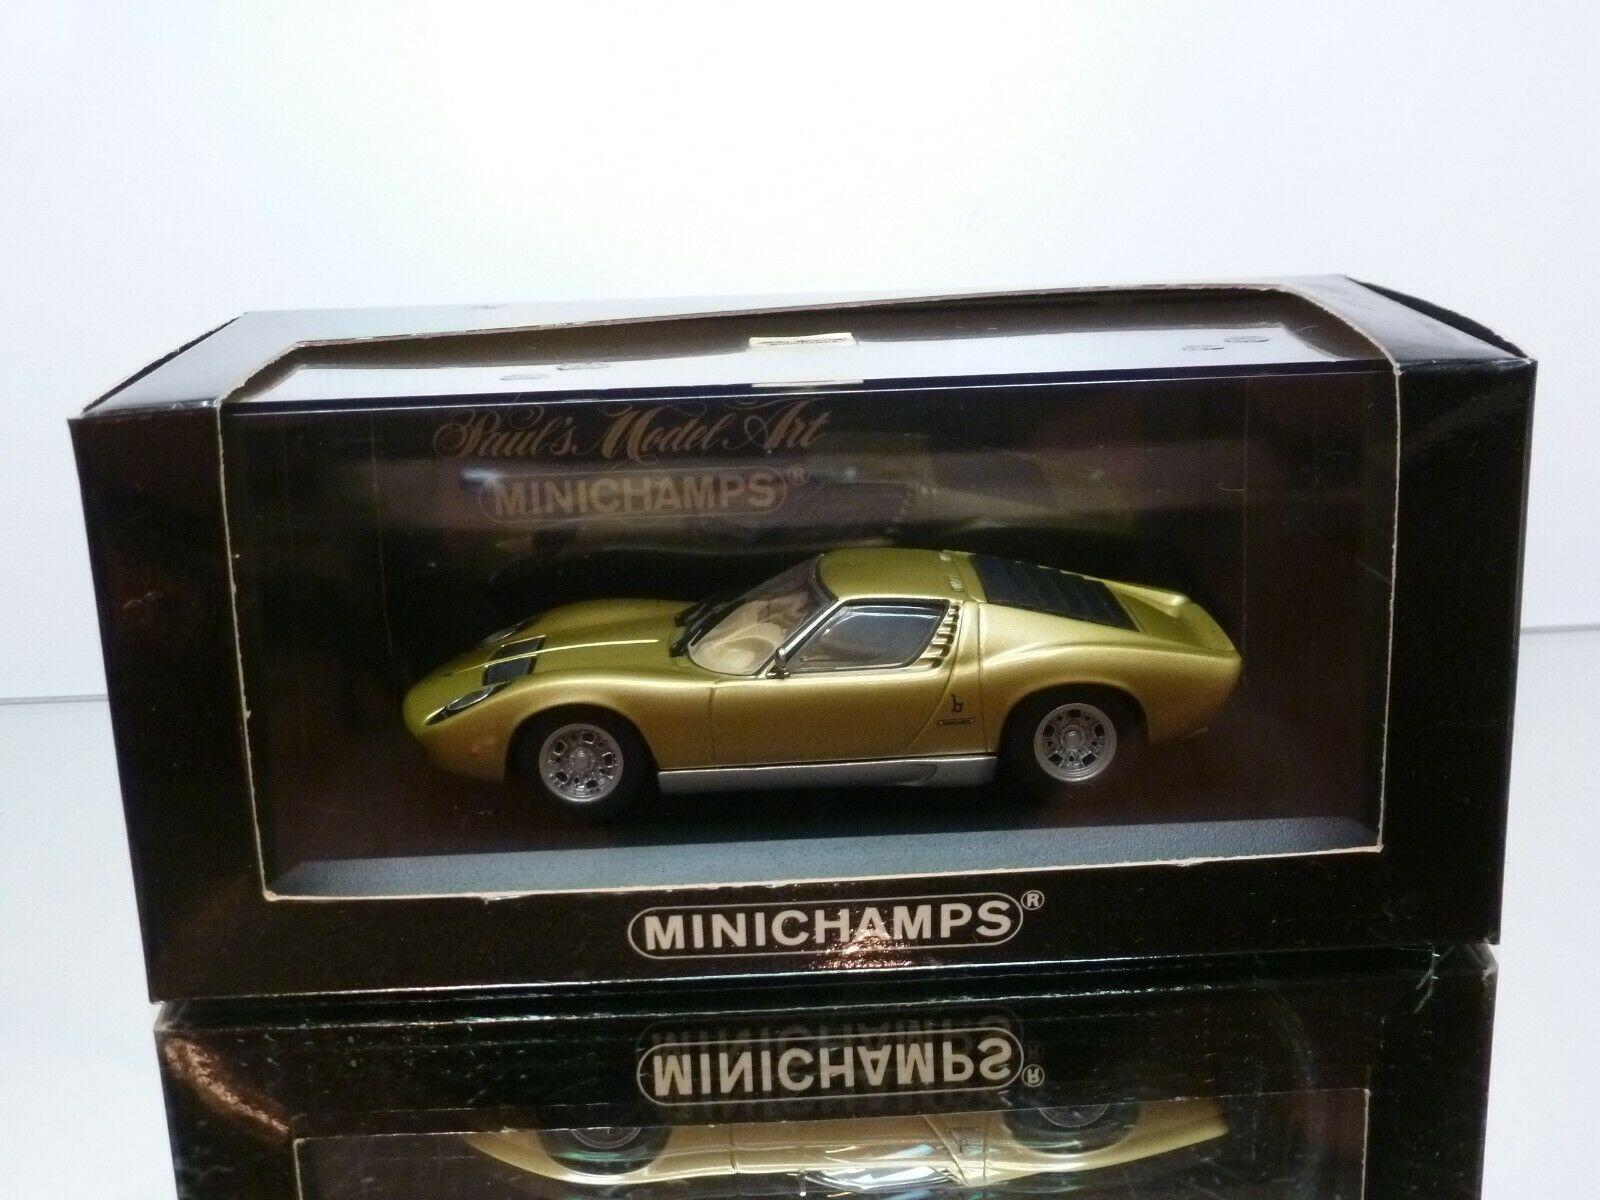 MINICHAMPS 103001 LAMBORGHINI MIURA - oro 1 43 - EXCELLENT IN BOX